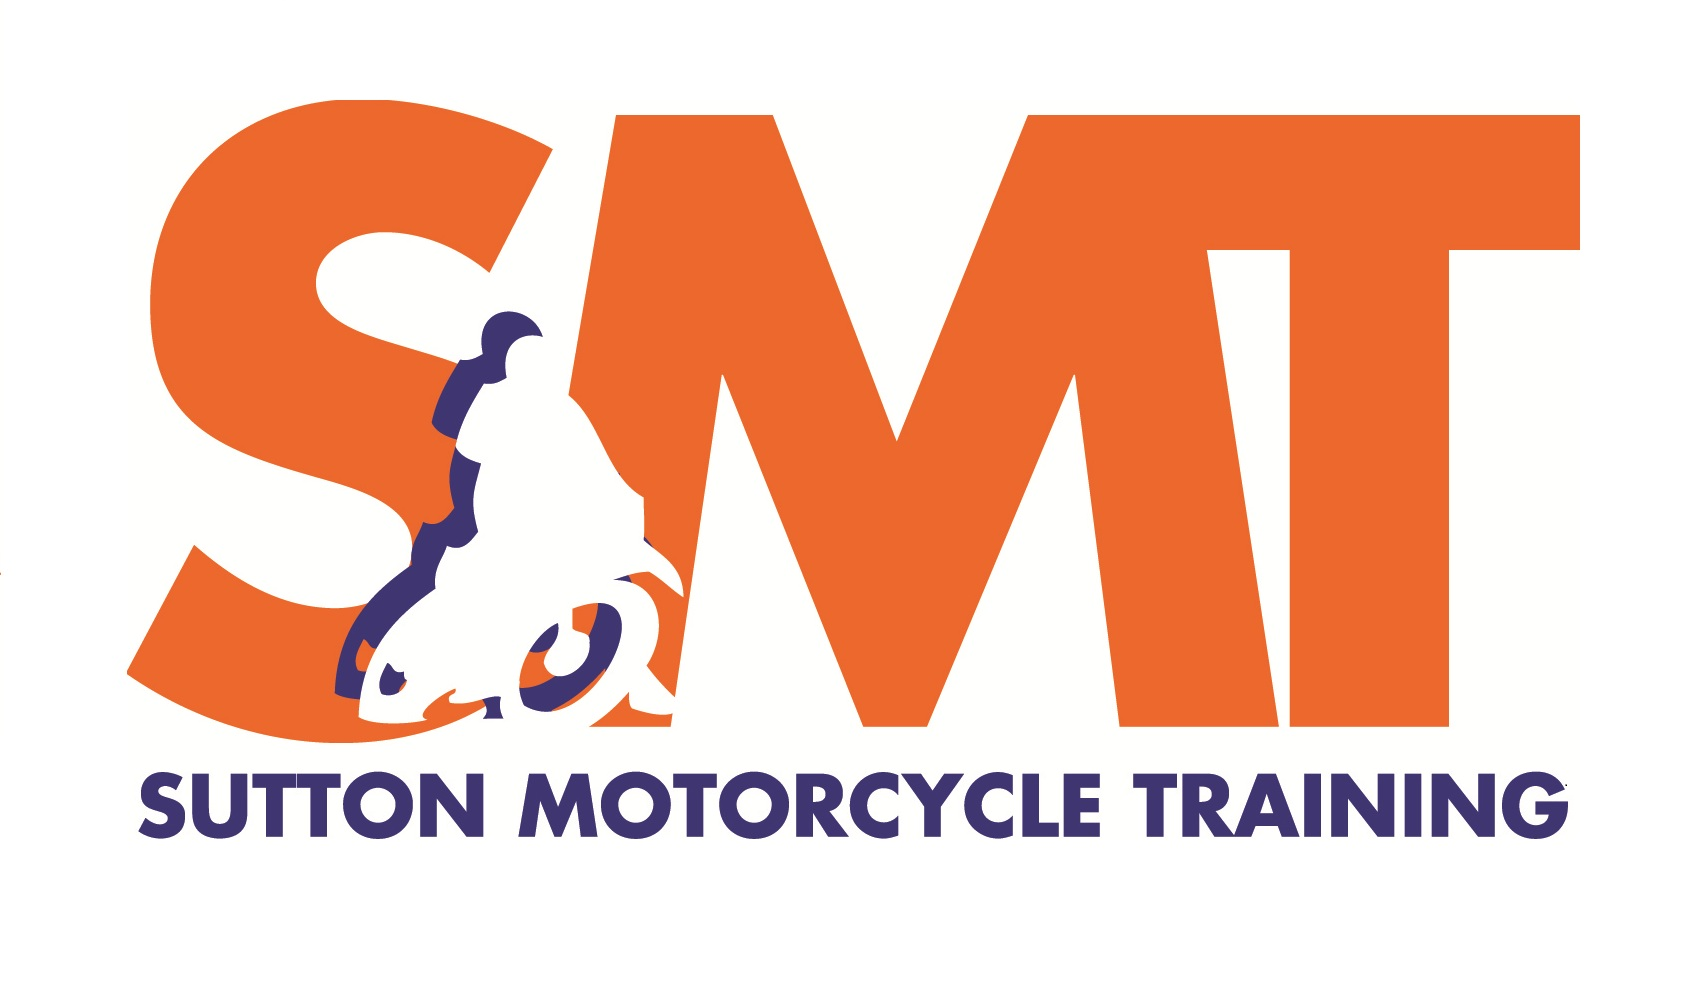 Sutton Motorcycle Training